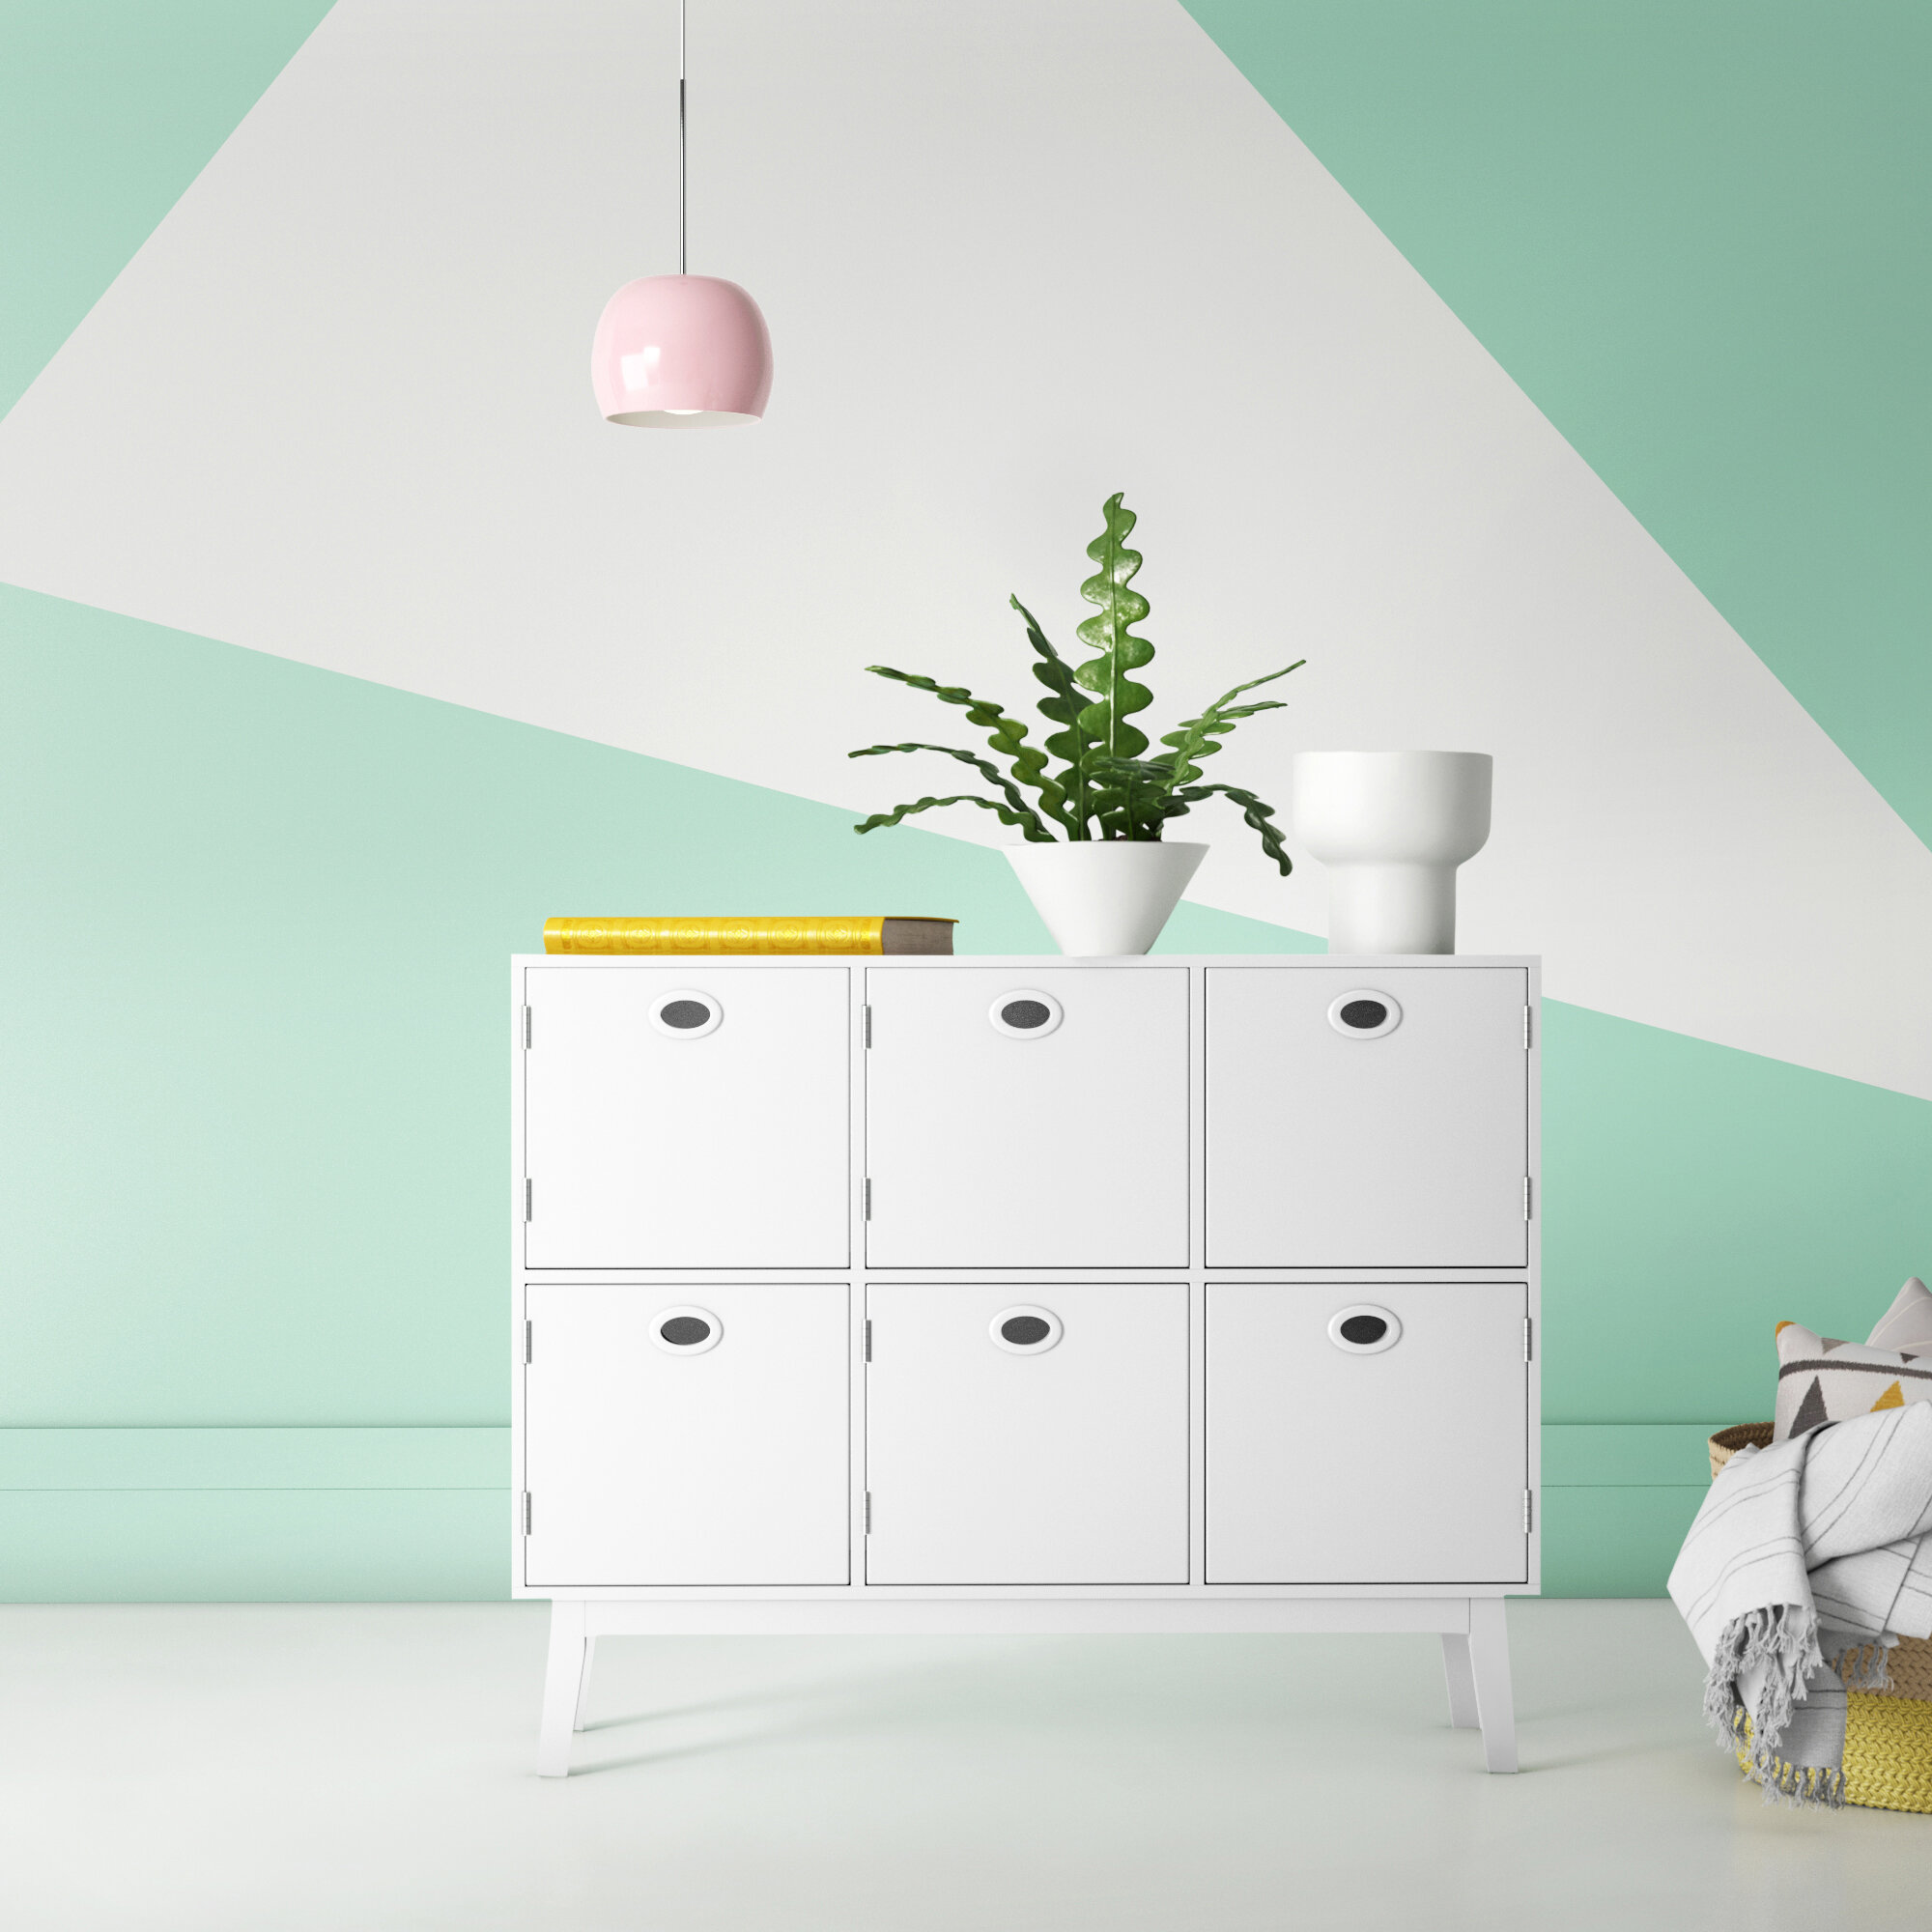 20 or More Shelves Cabinets & Chests You'll Love in 20   Wayfair